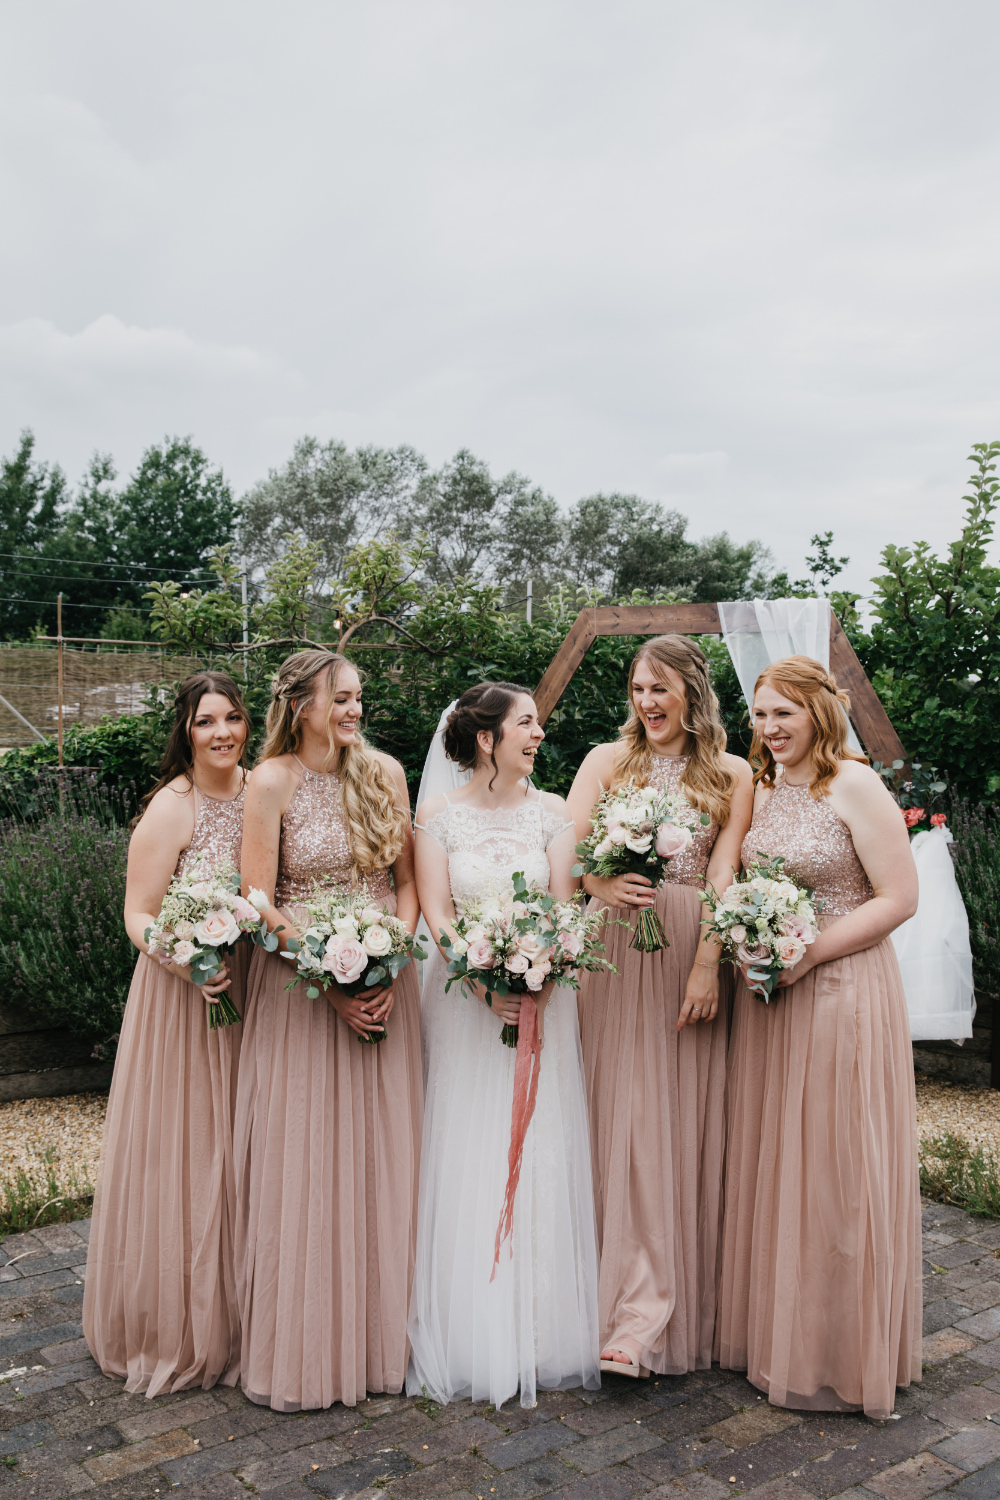 Bridesmaids Bridesmaid Dress Dresses Rose Gold Sequin Field Kitchen Wedding Siobhan Amy Photography